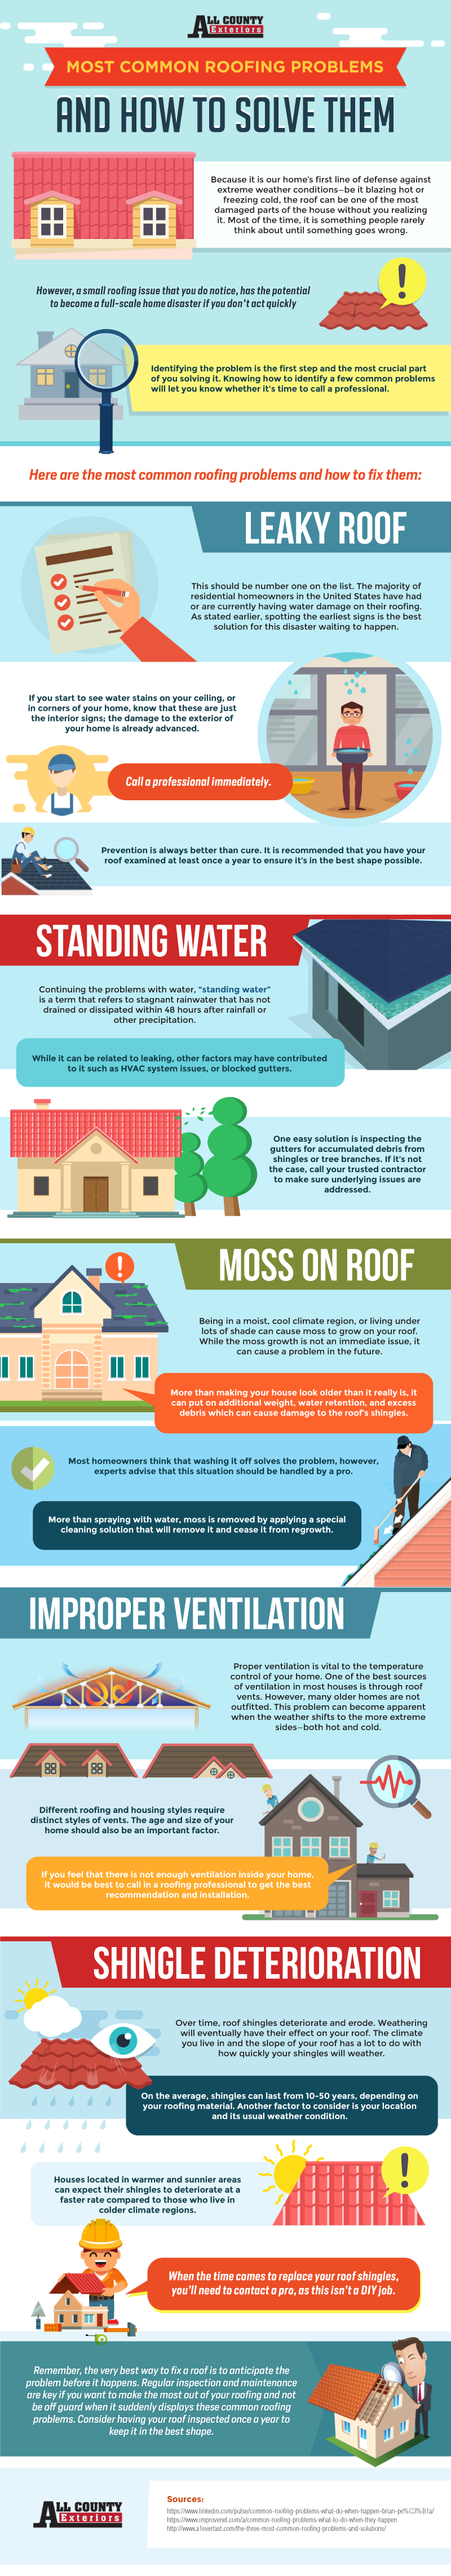 Solving Most Common Roofing Problems - All County Exteriors